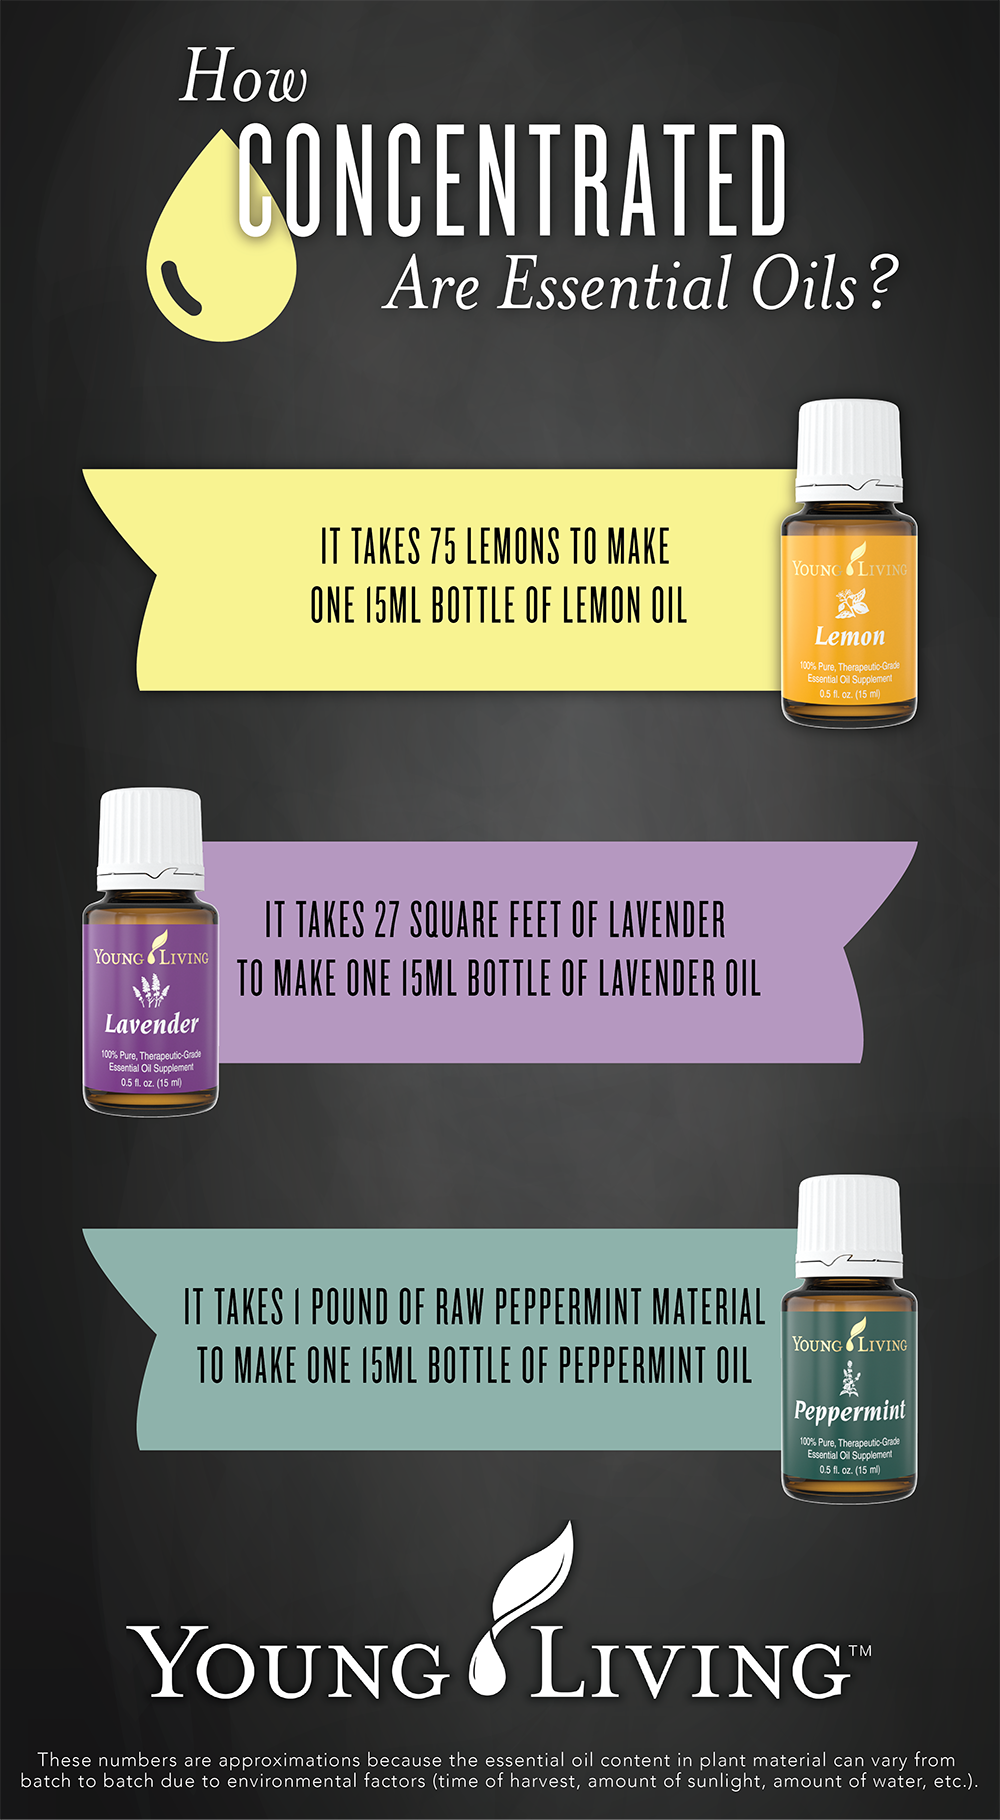 Interesting Facts about Young Living Essential Oils